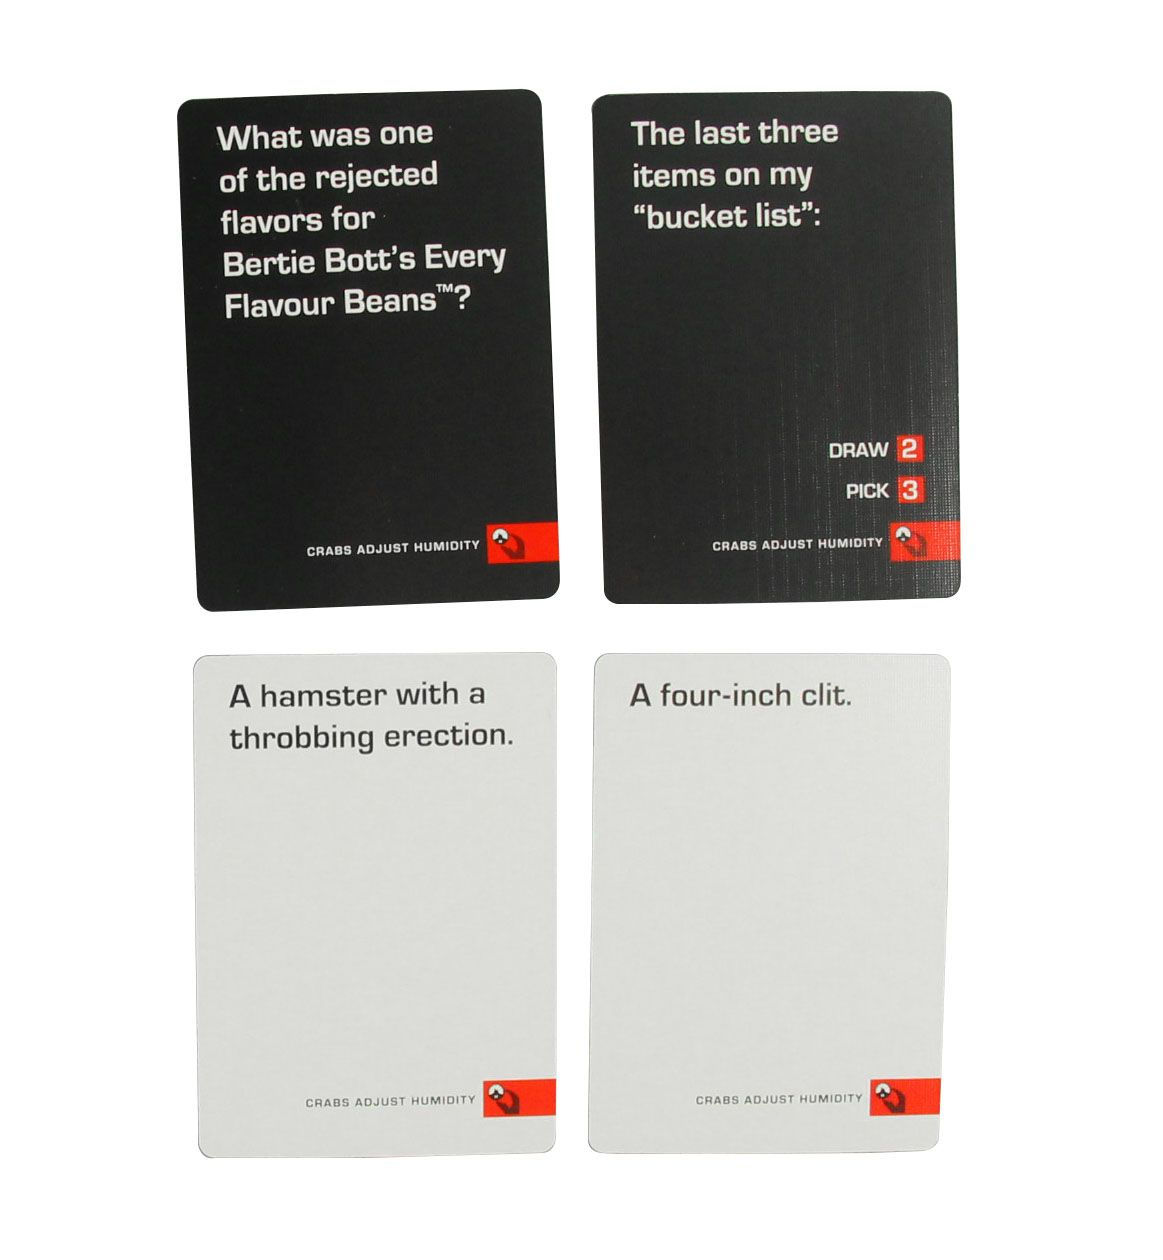 crabs adjust humidity,Great card expansions to really spice up cards against humanity. These are much more explicit and vulgar but that's what makes things interesting!